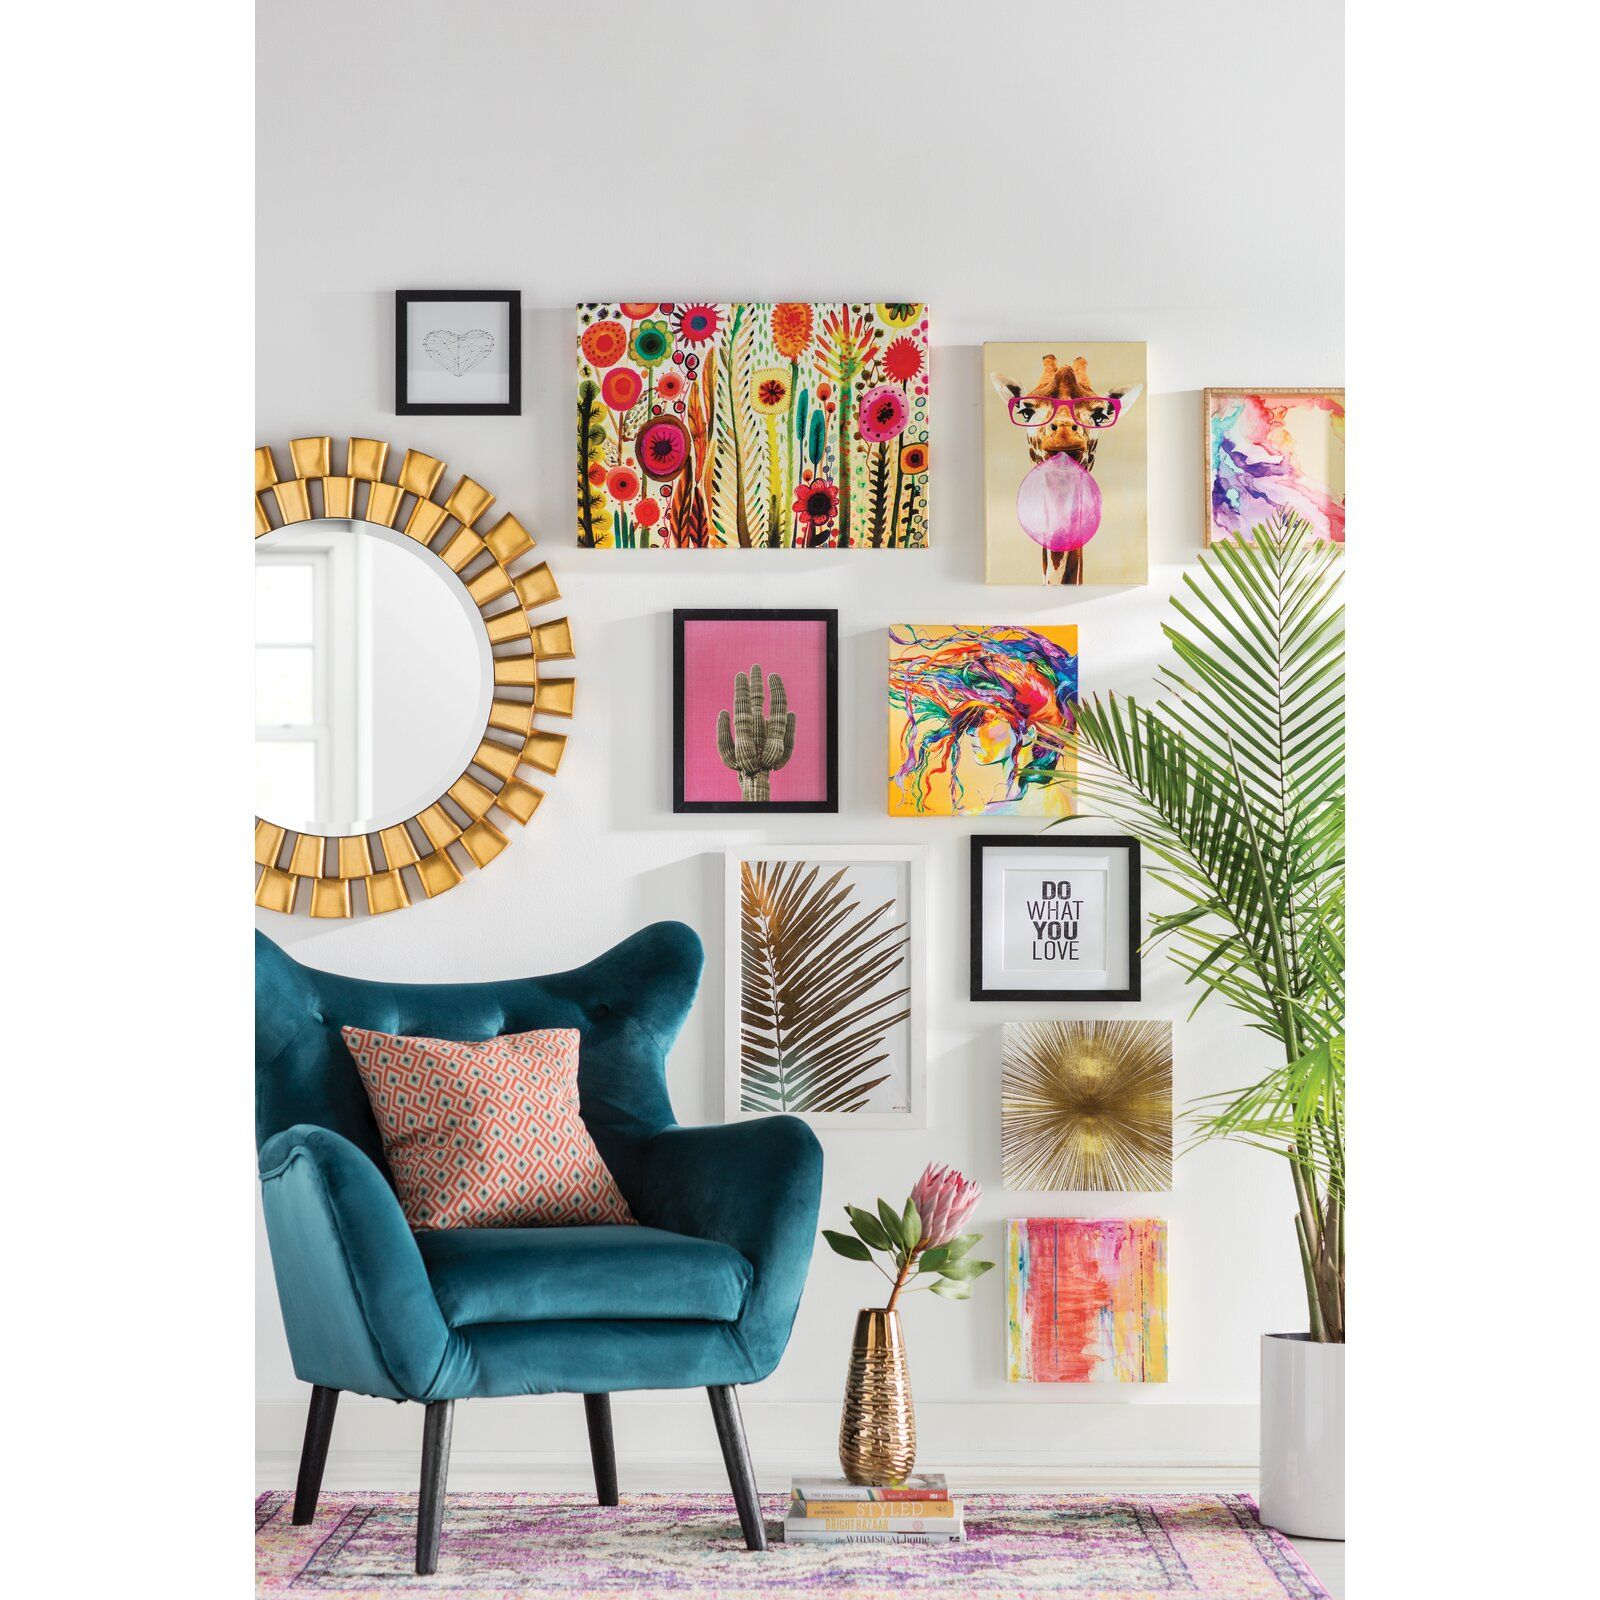 Bouck 21 Wingback Chair Living Room Design Teal Eclectic Living Room Eclectic Living Room Design